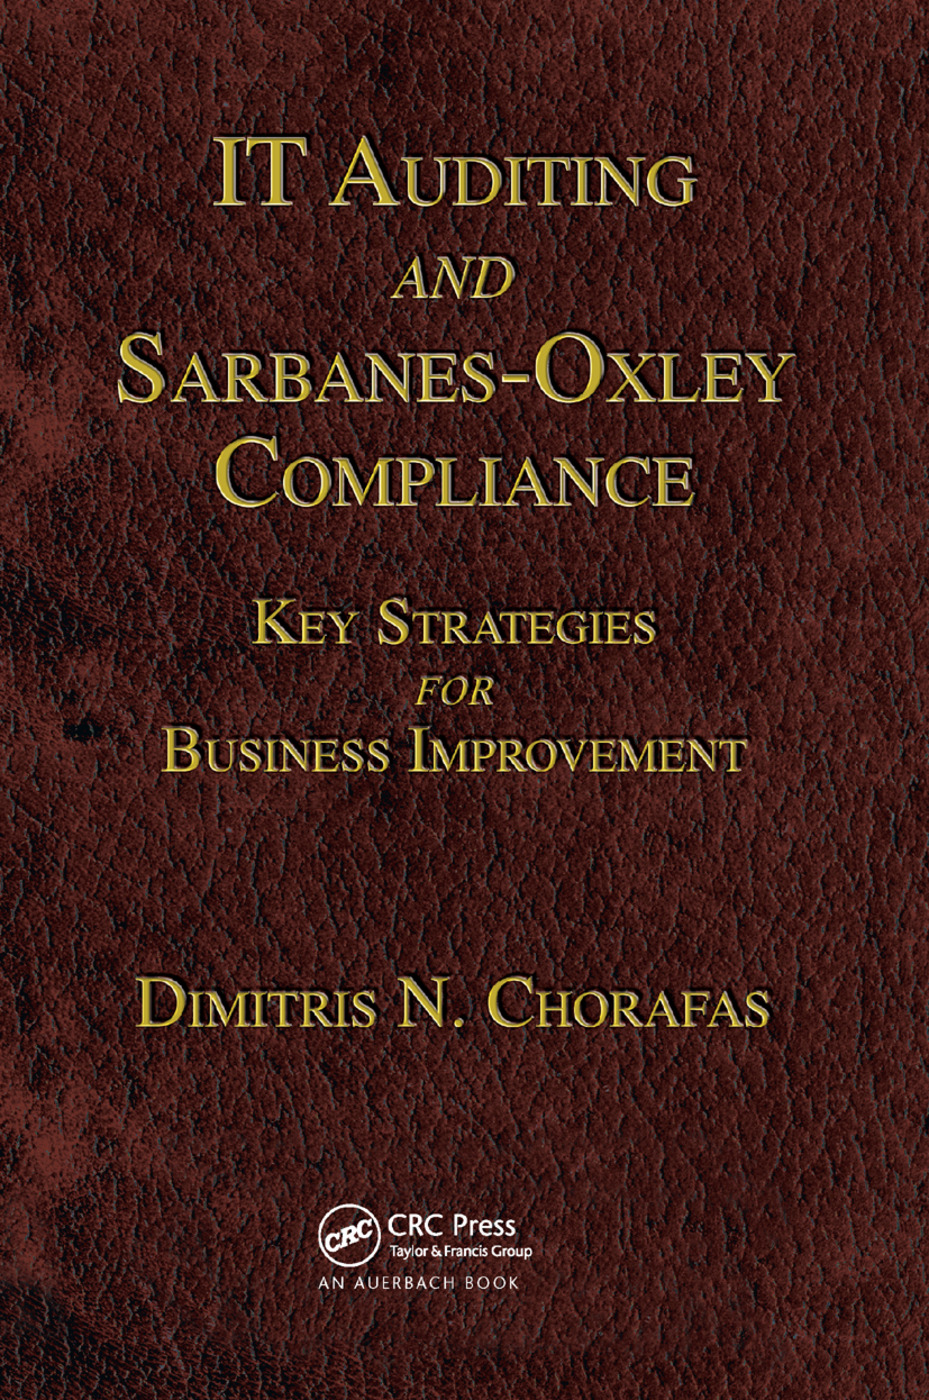 IT Auditing and Sarbanes-Oxley Compliance: Key Strategies for Business Improvement, 1st Edition (Paperback) book cover